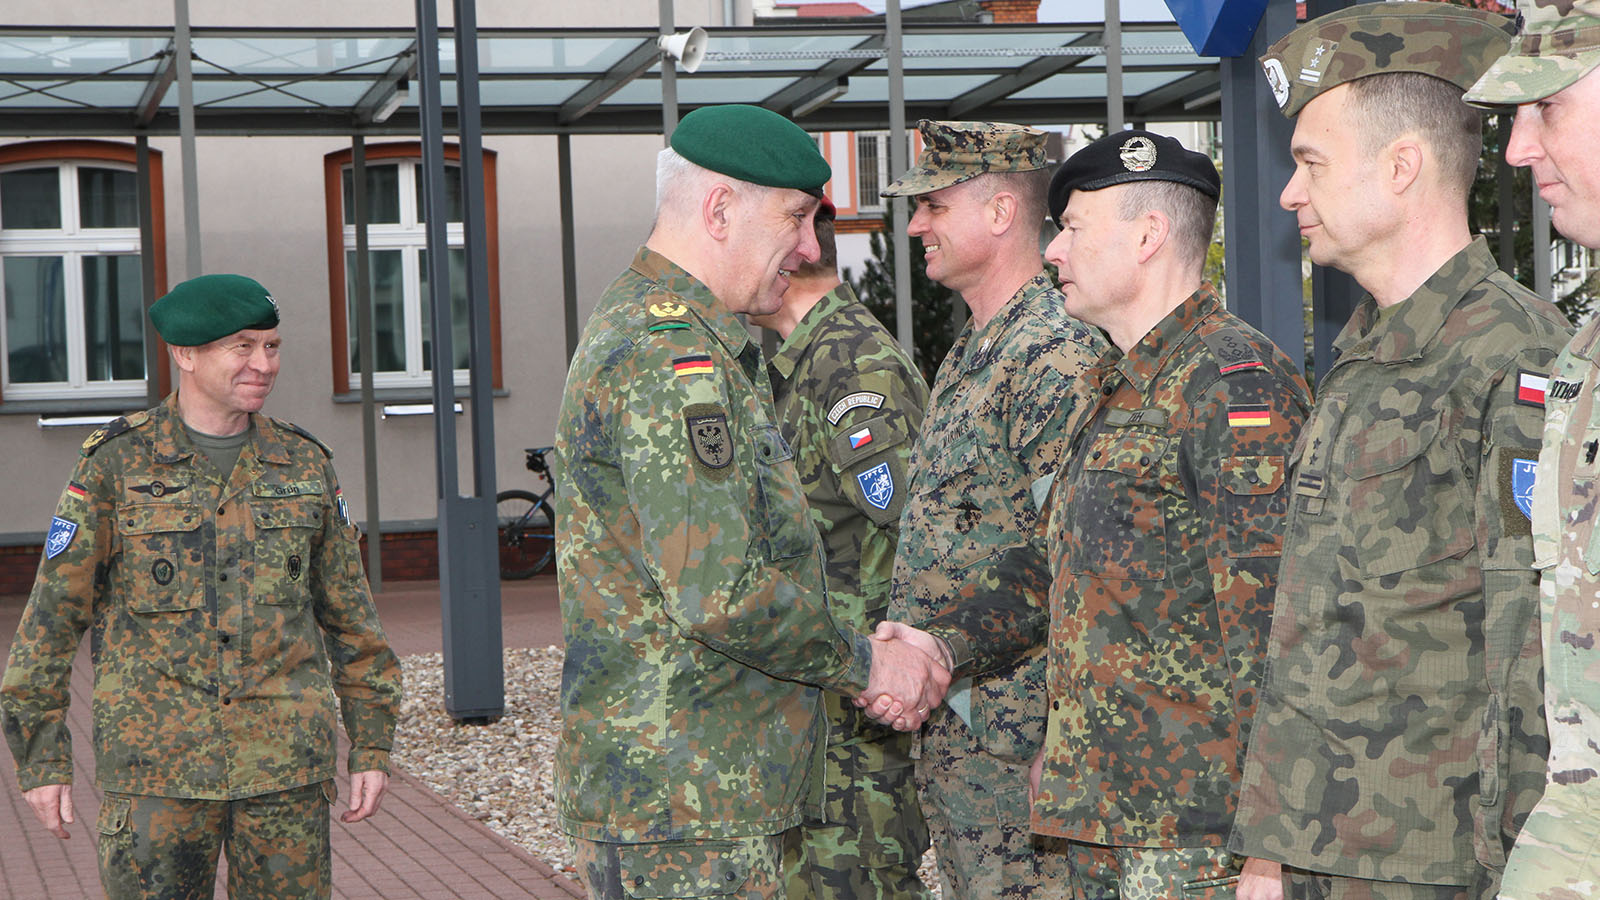 Heading for Afghanistan. JFTC Opens Another Resolute Support Training